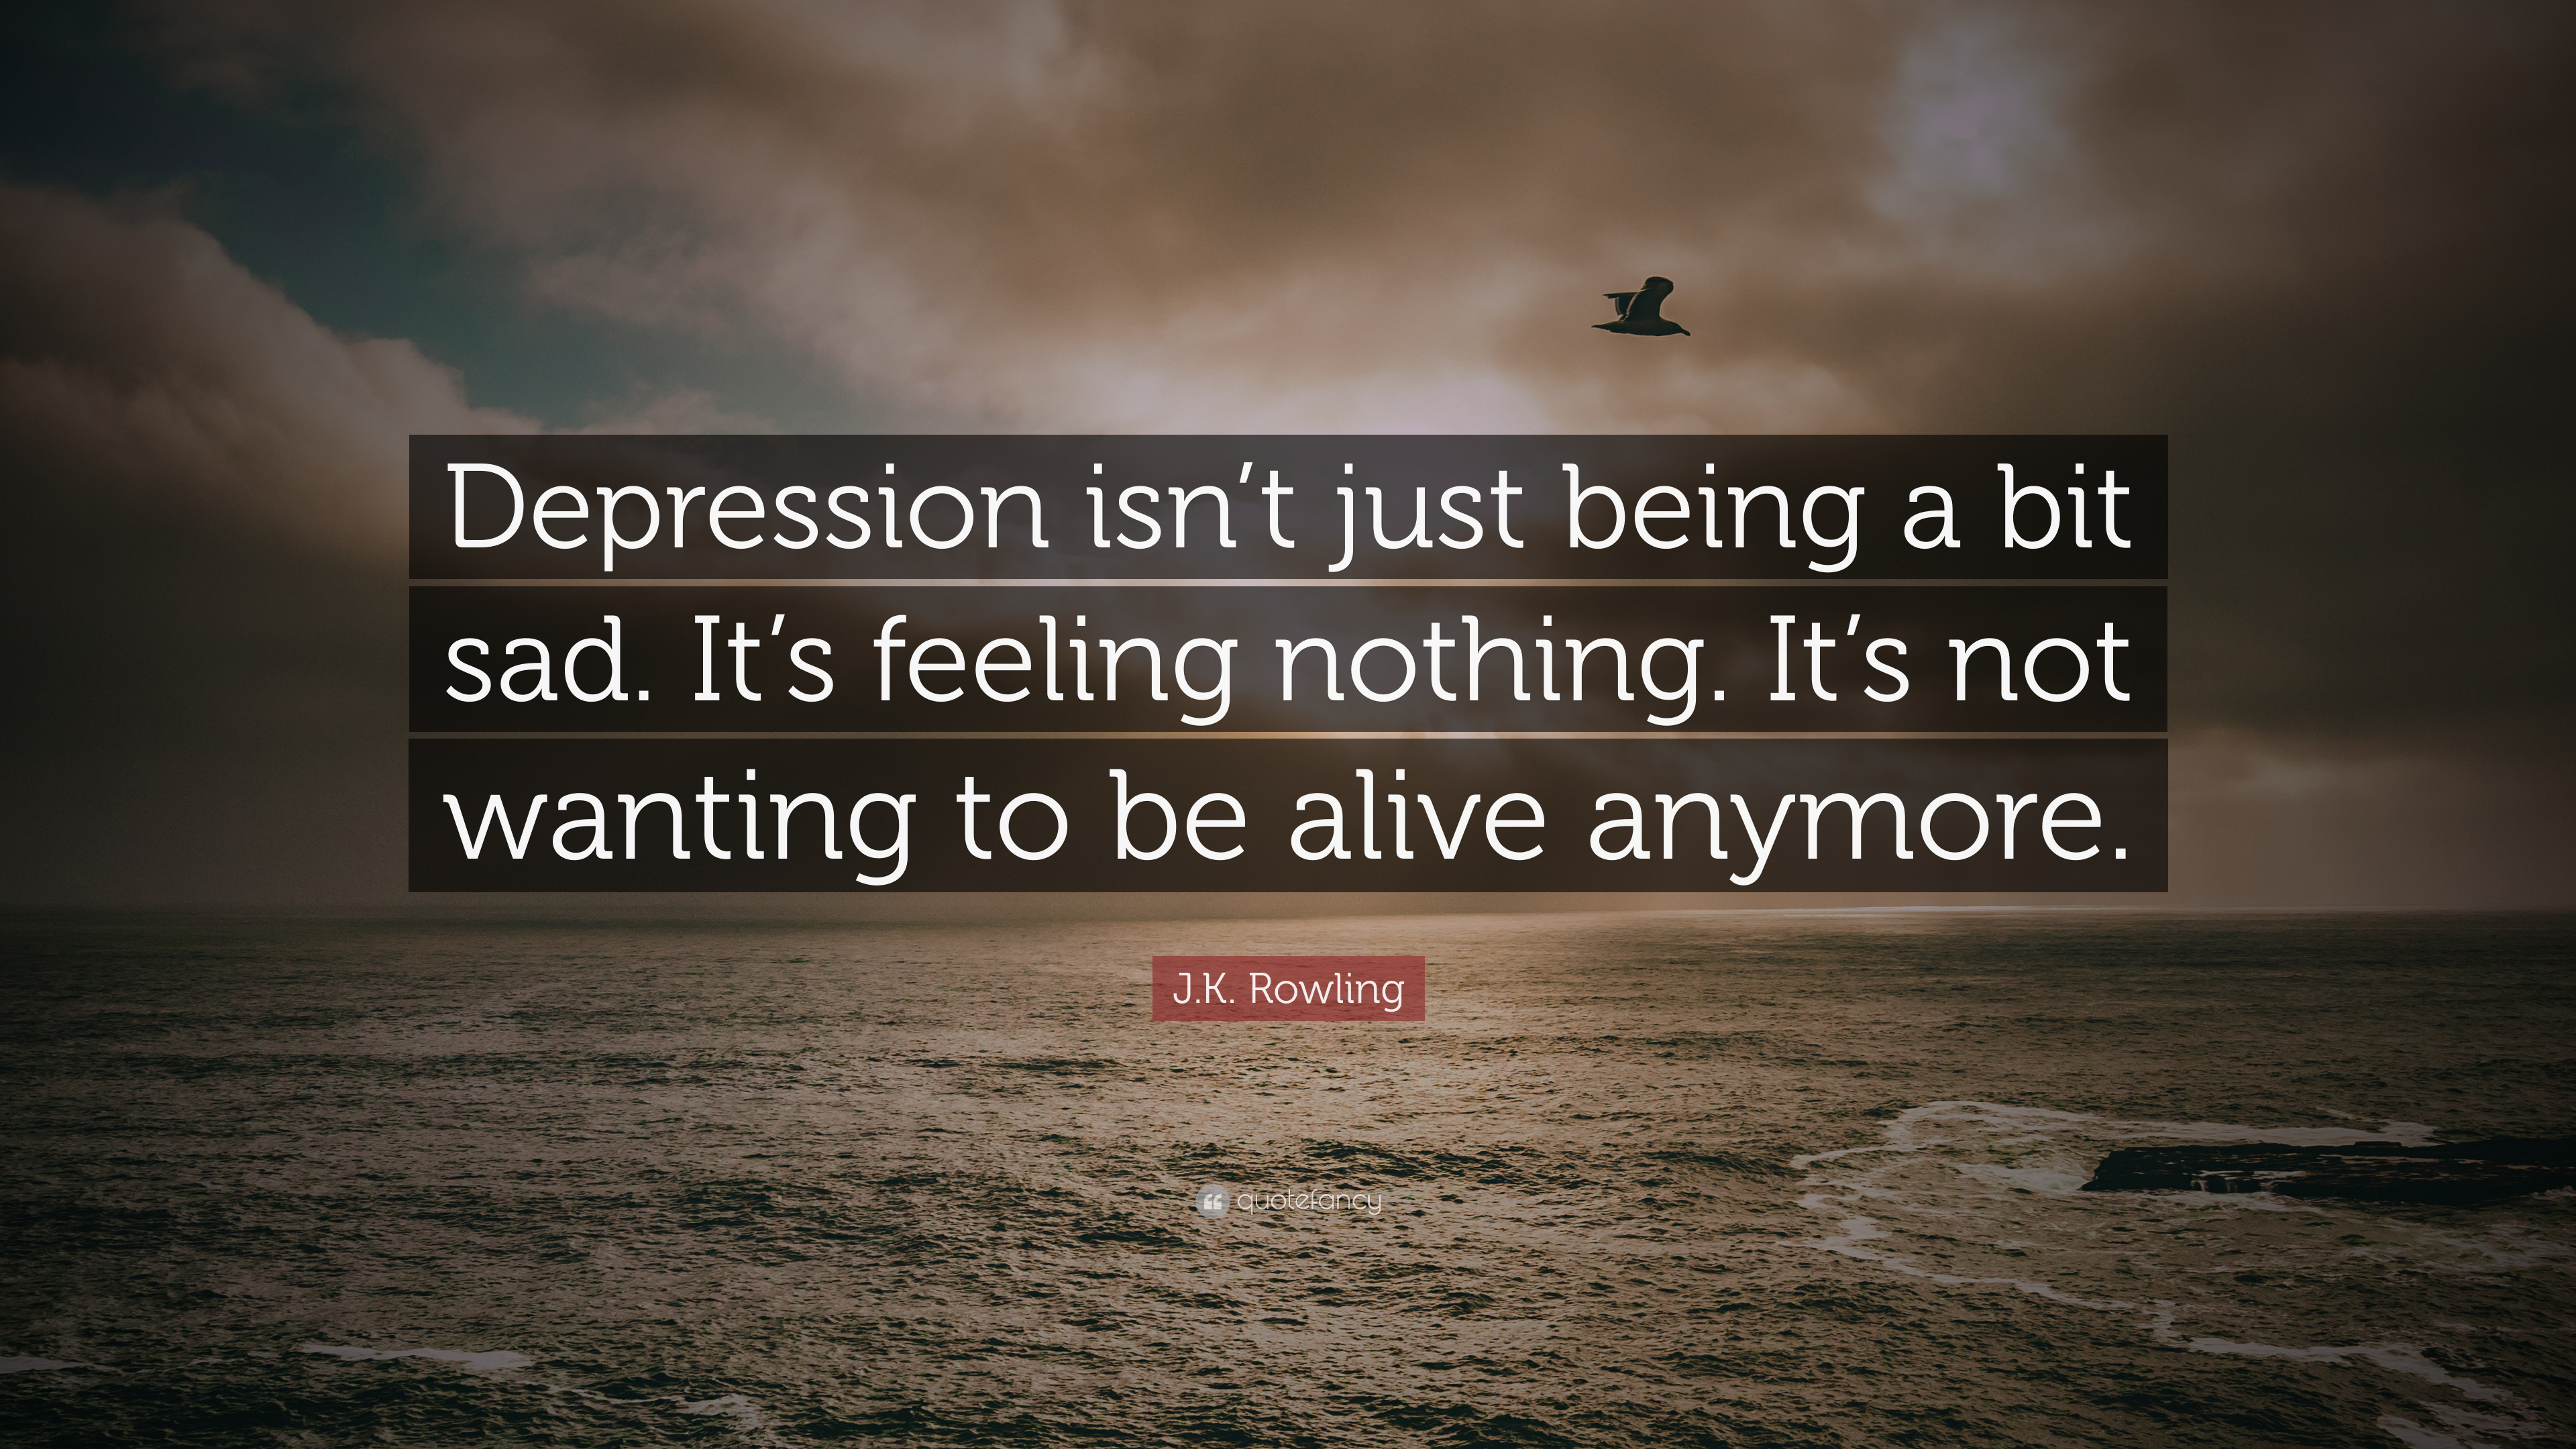 J K Rowling Quote Depression Isn T Just Being A Bit Sad It S